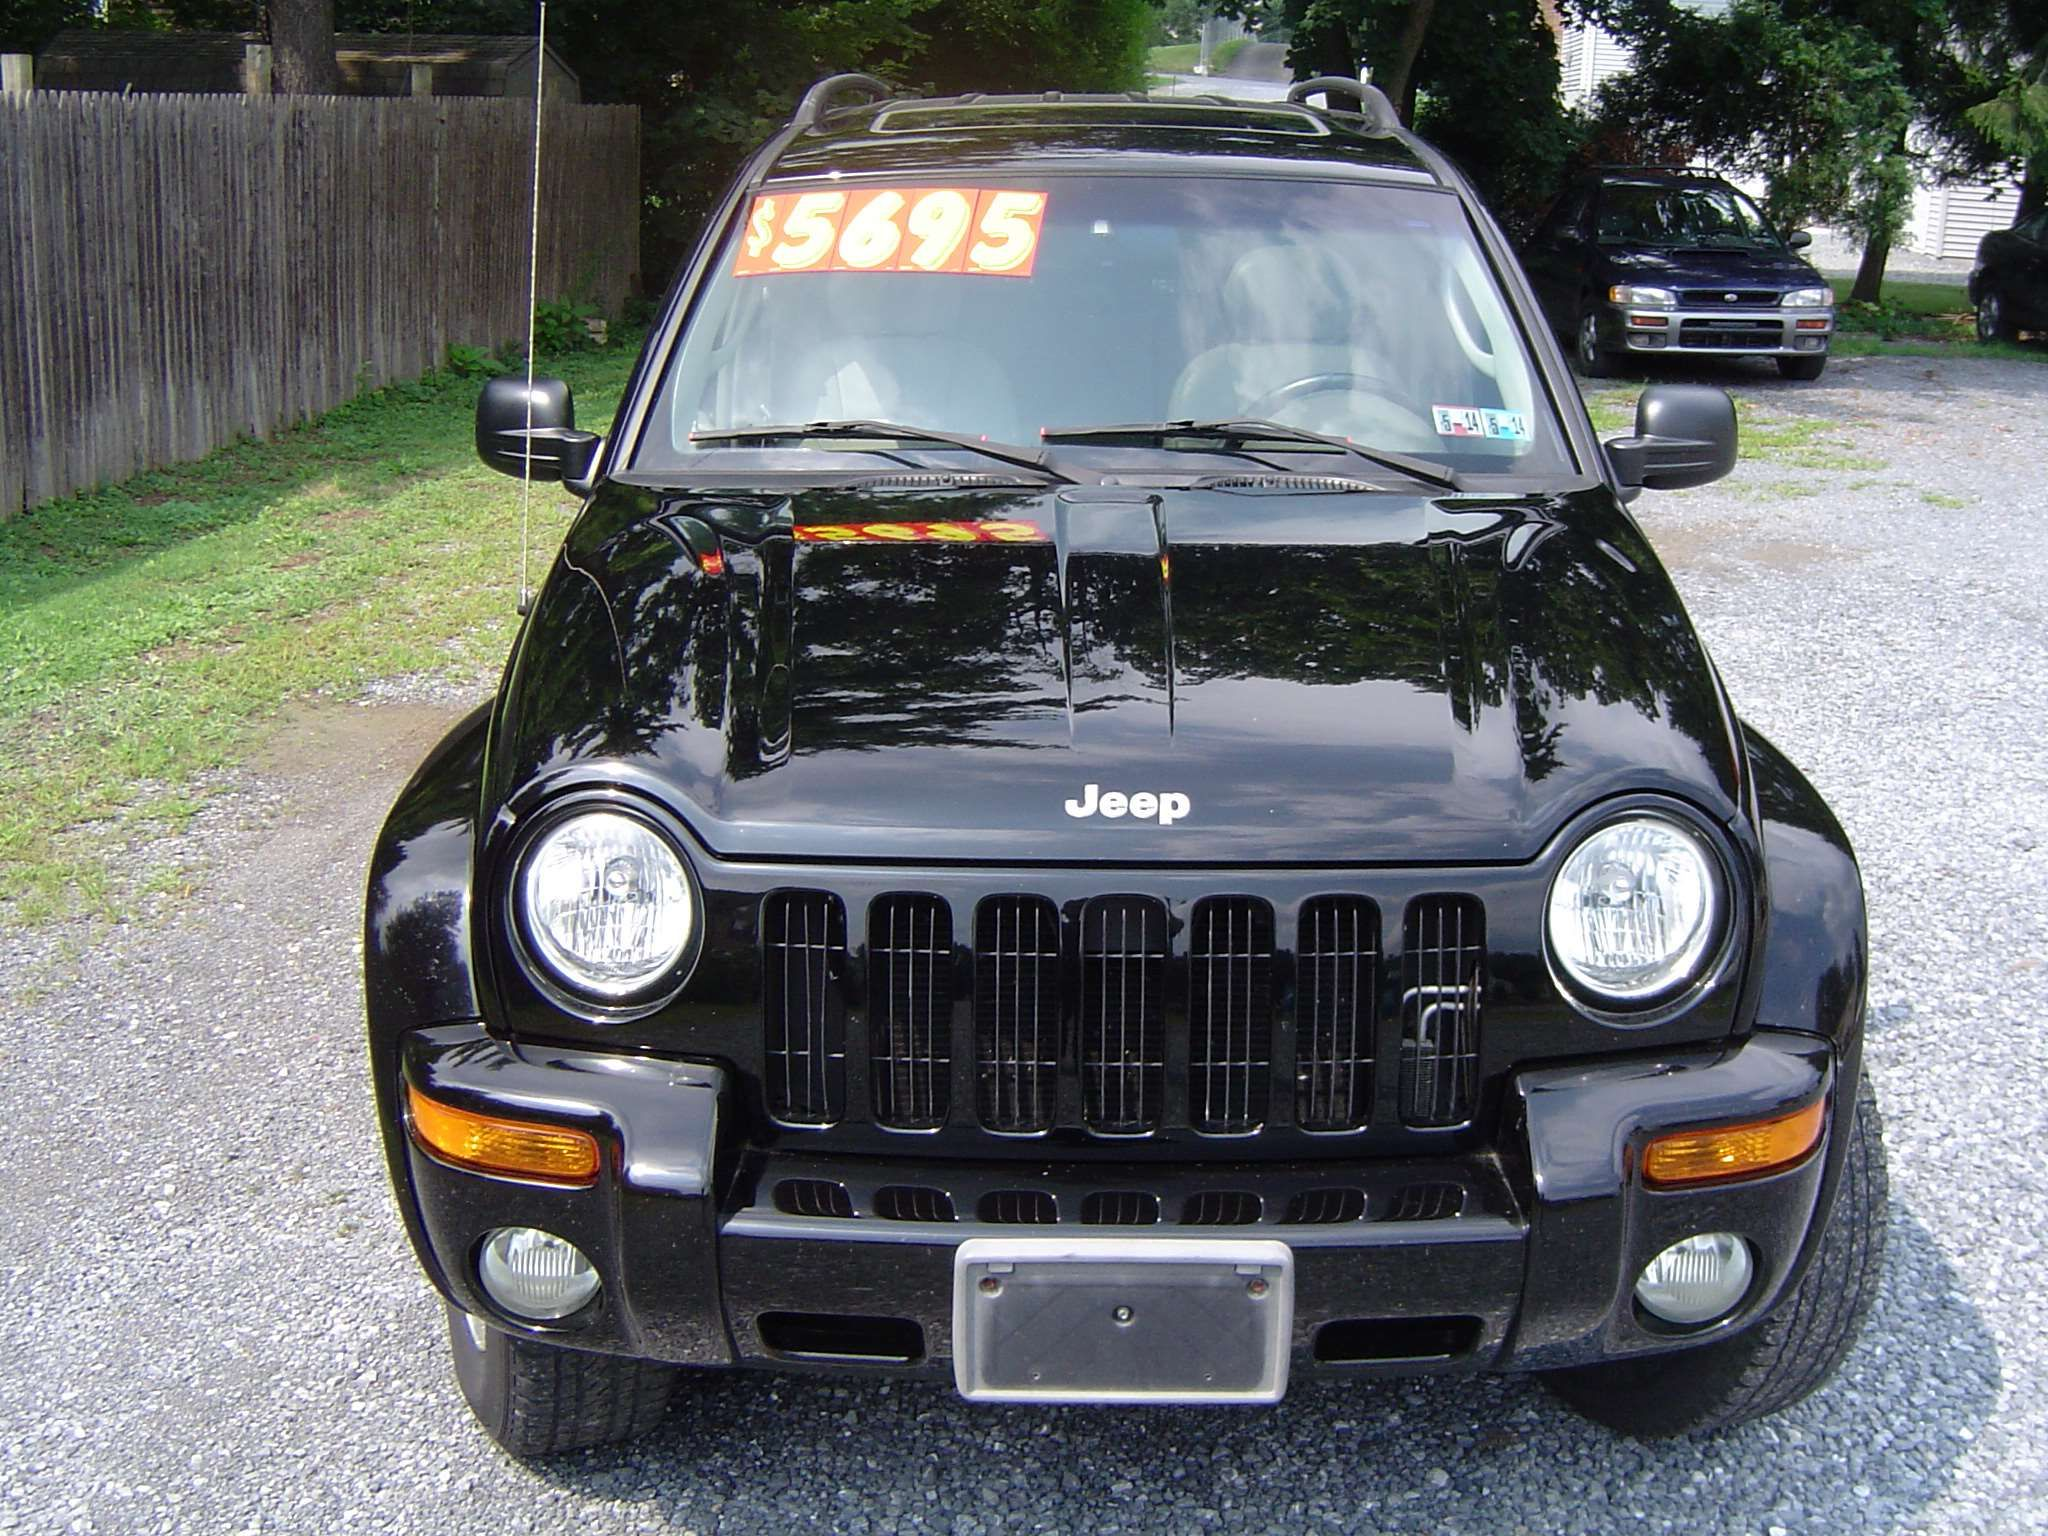 Make jeep model liberty year 2002 body style suv exterior color black interior color gray doors four door vehicle condition very good price 5 695